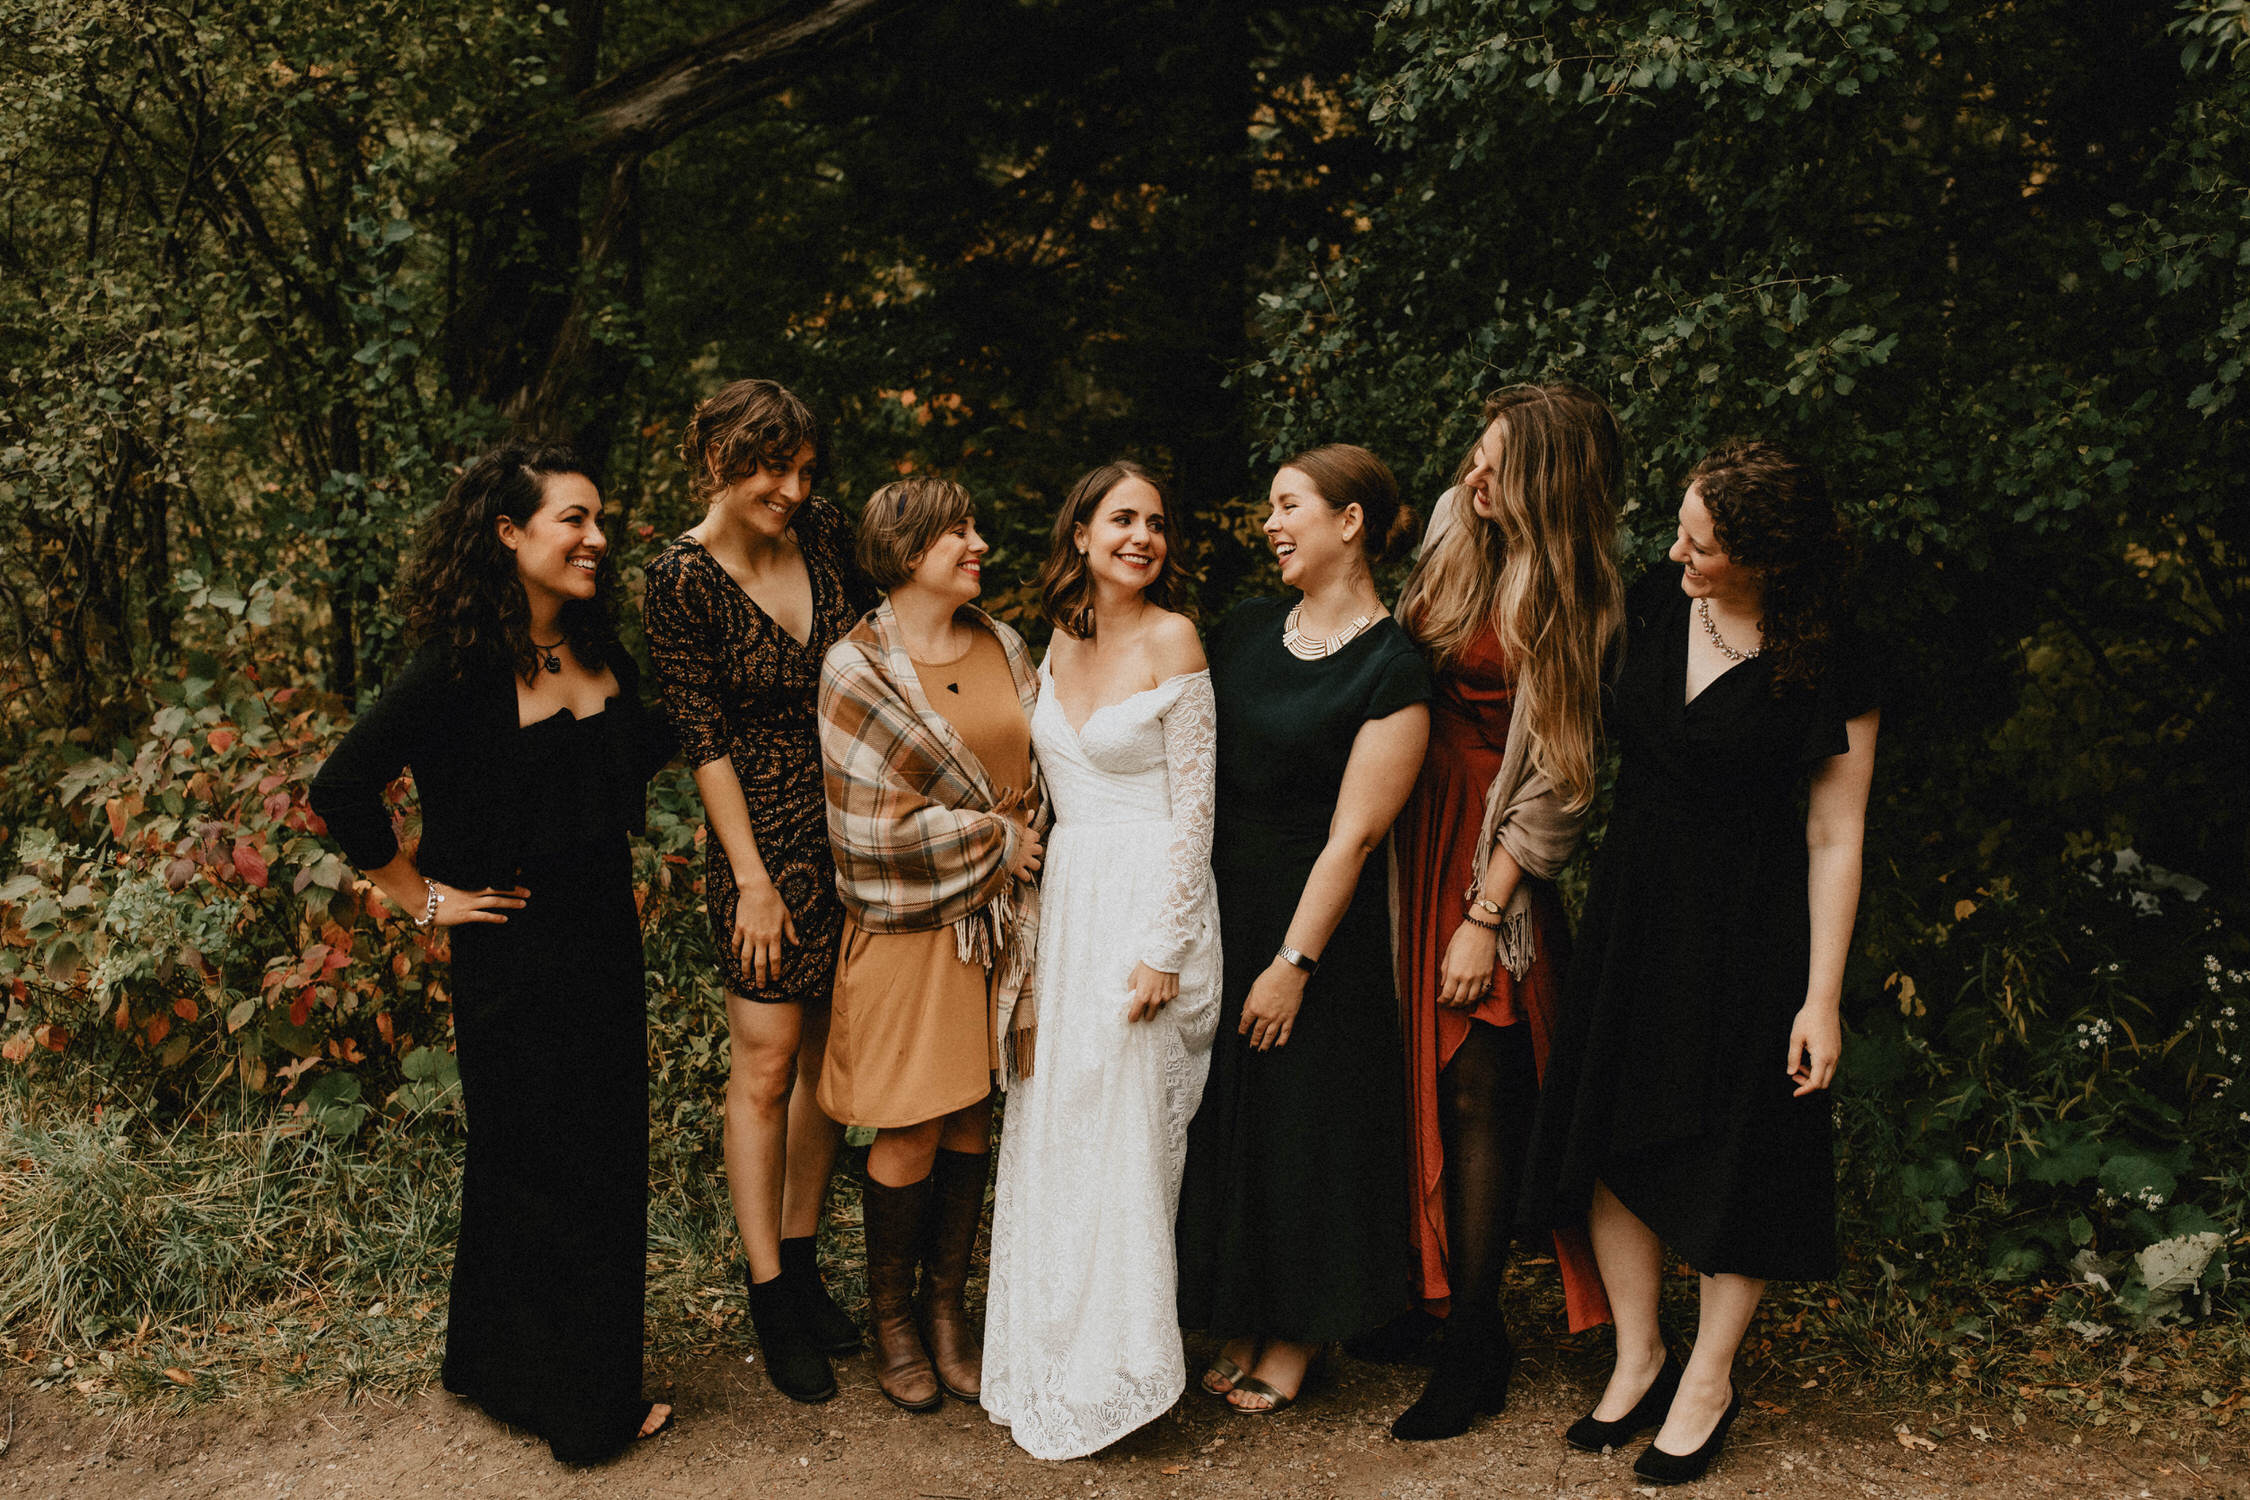 Bride with friends in forest - Huron Natural Area Micro Wedding Kitchener, Ontario